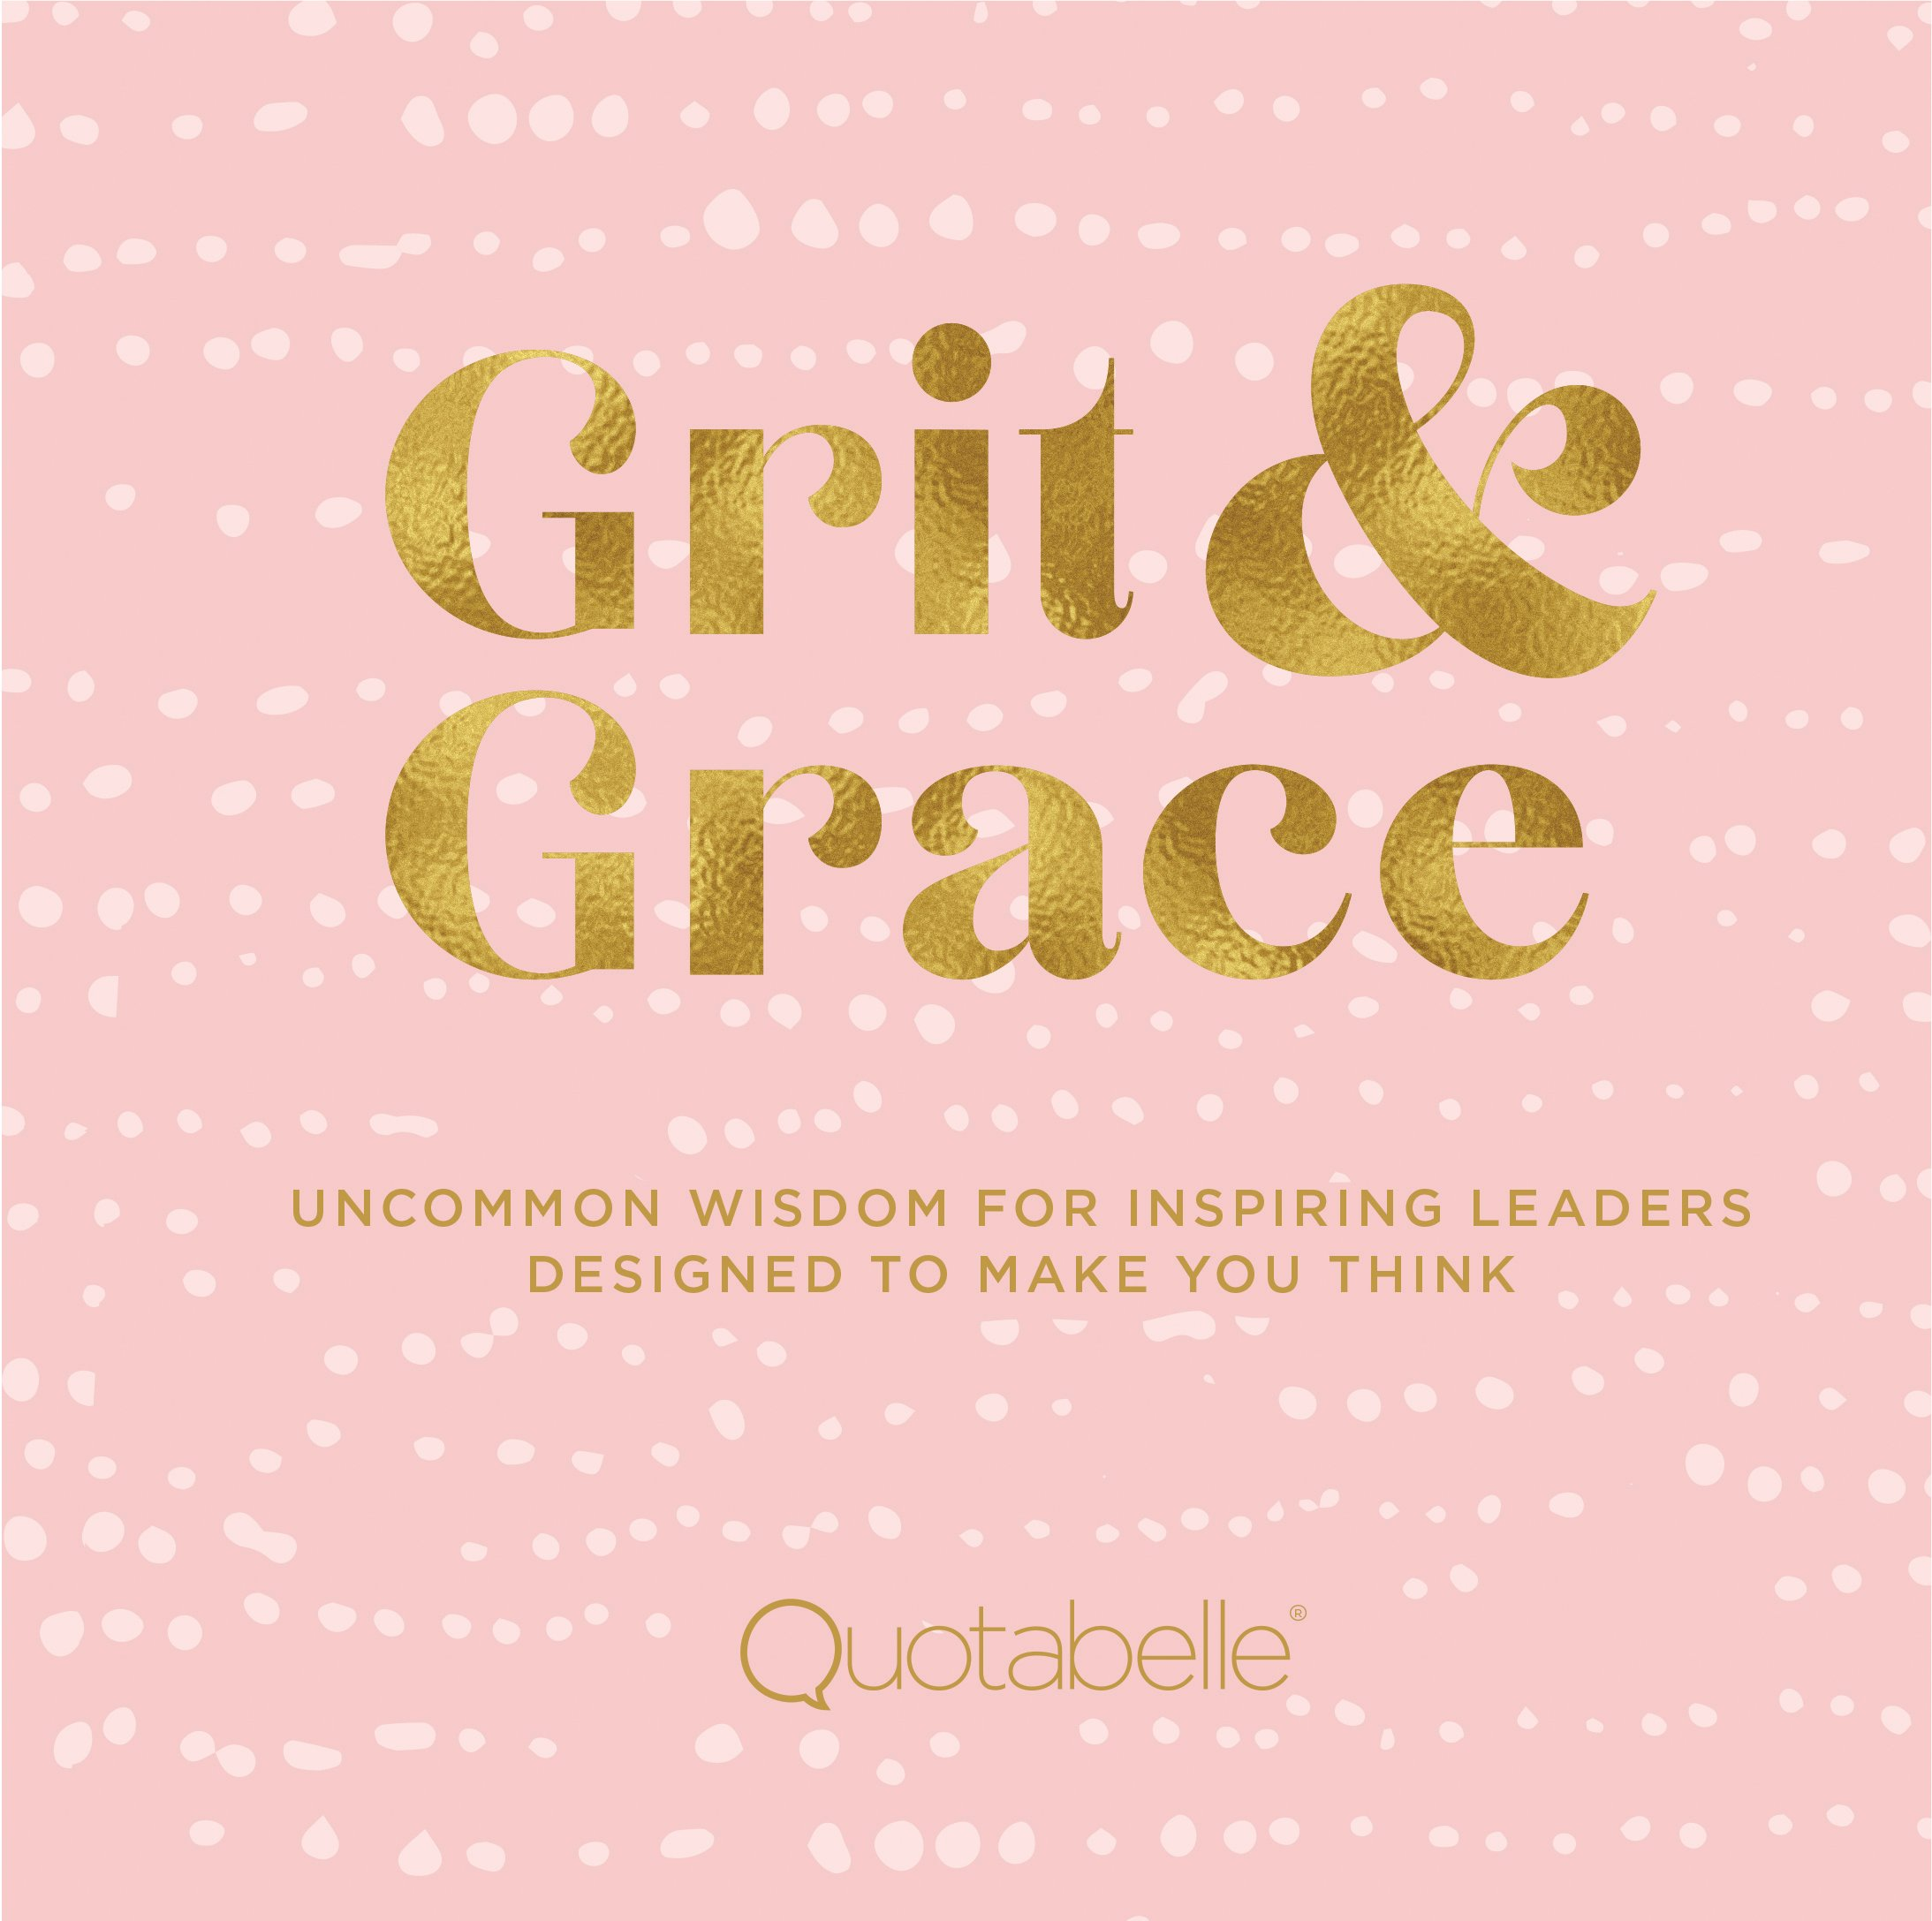 Grace Quotes | Grit And Grace Uncommon Wisdom For Inspiring Leaders Designed To